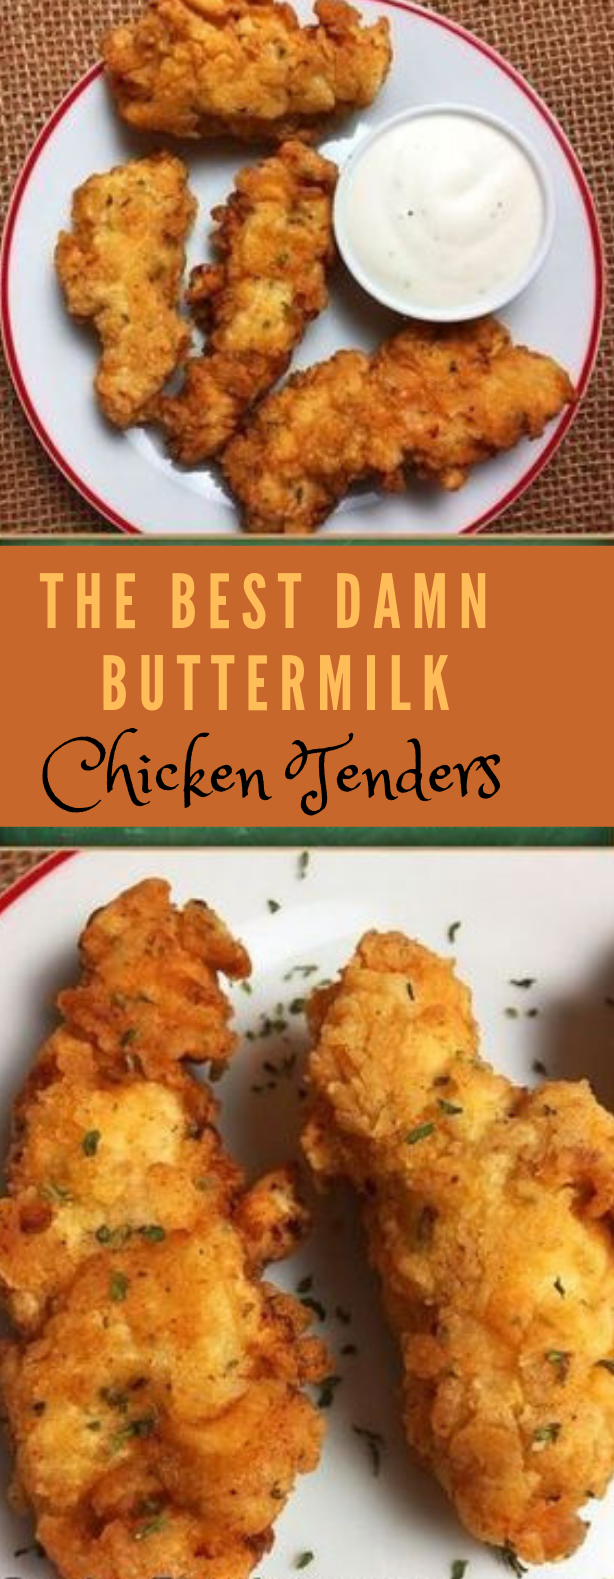 BEST DAMN BUTTERMILK CHICKEN TENDERS #healhydinner #eating